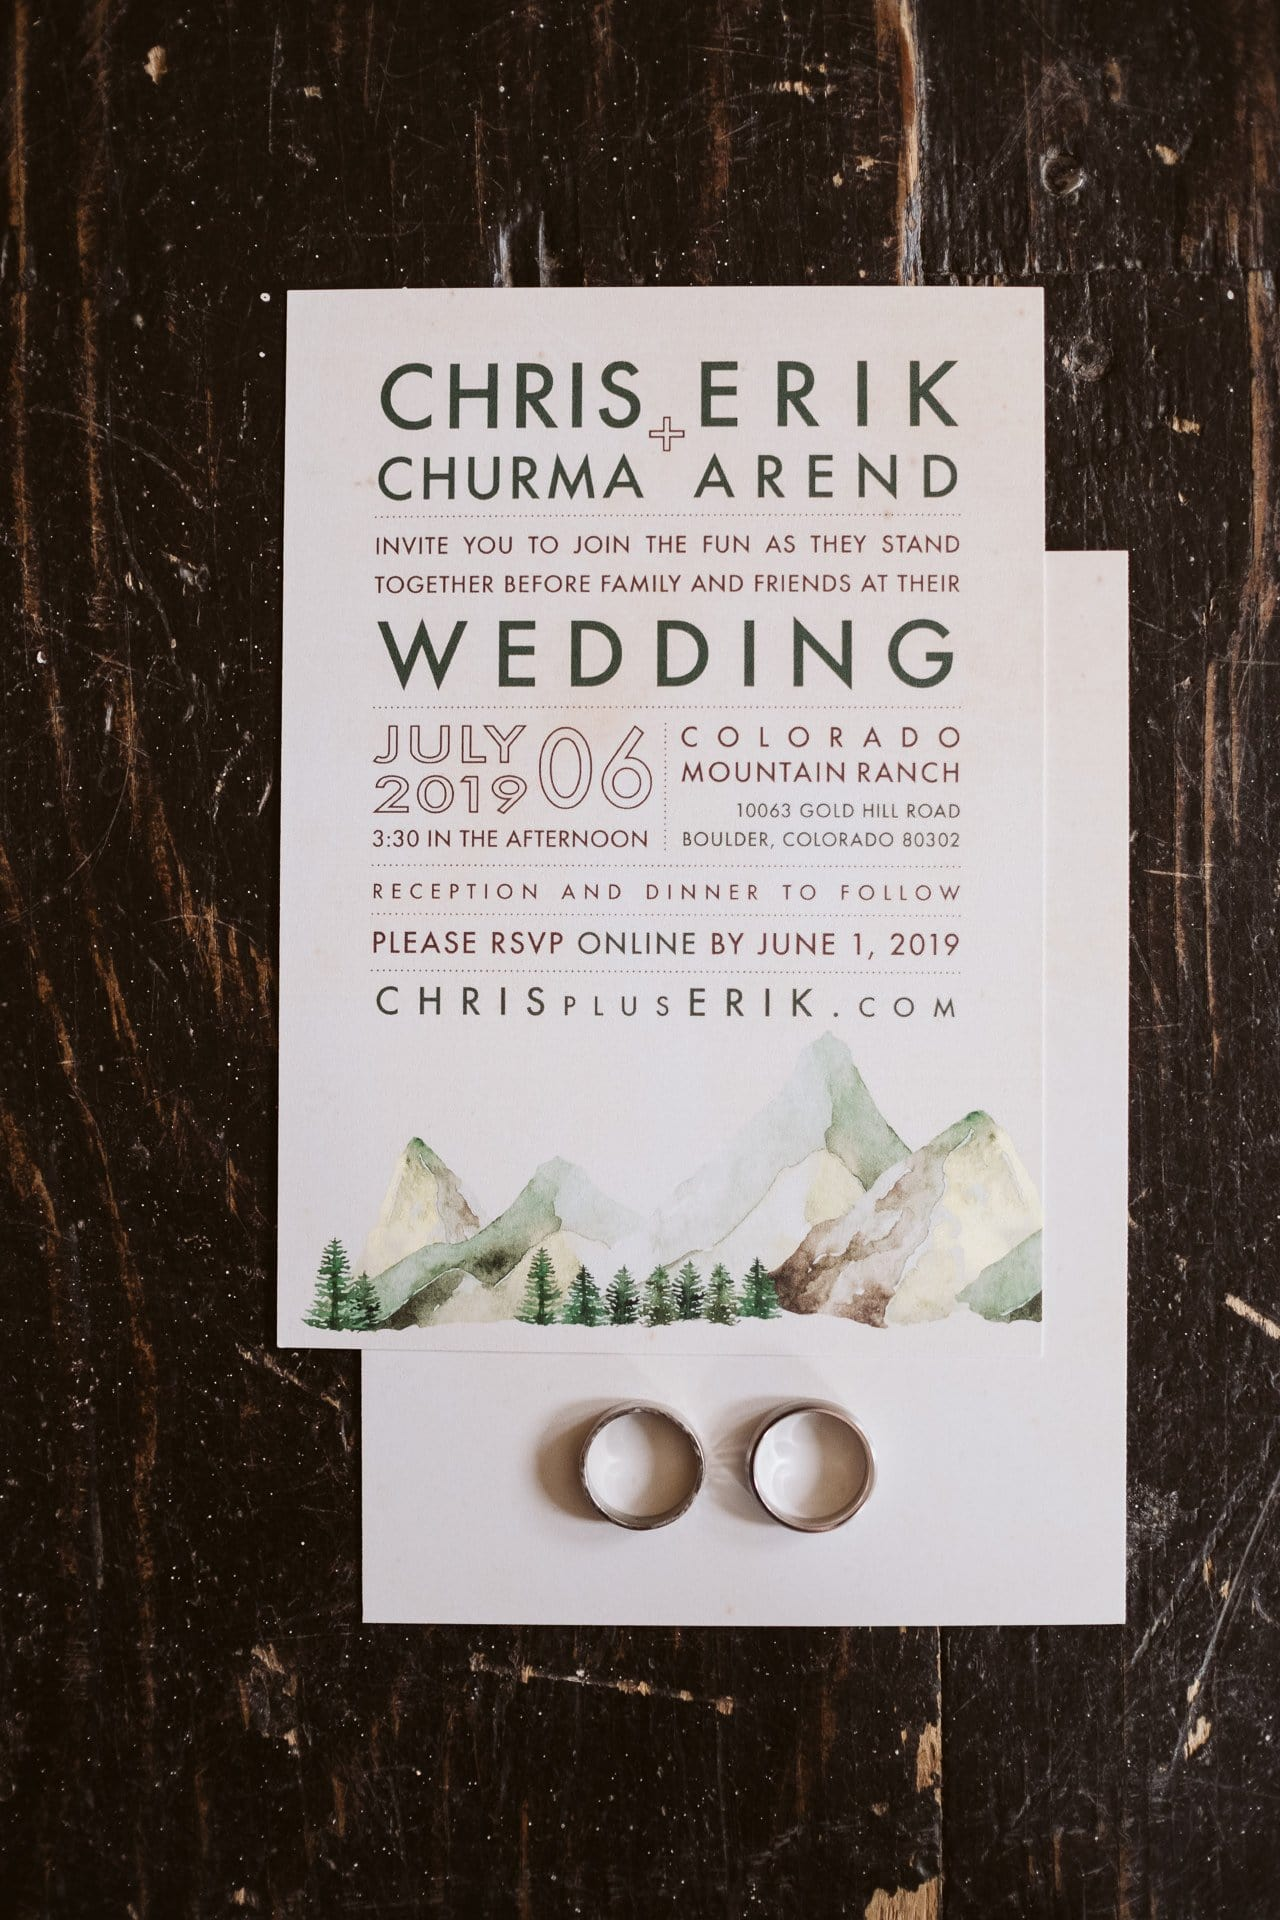 Wedding details with matching leather shoes, leather watches, boutonnieres, and wedding invitations. Gay wedding at Colorado Mountain Ranch